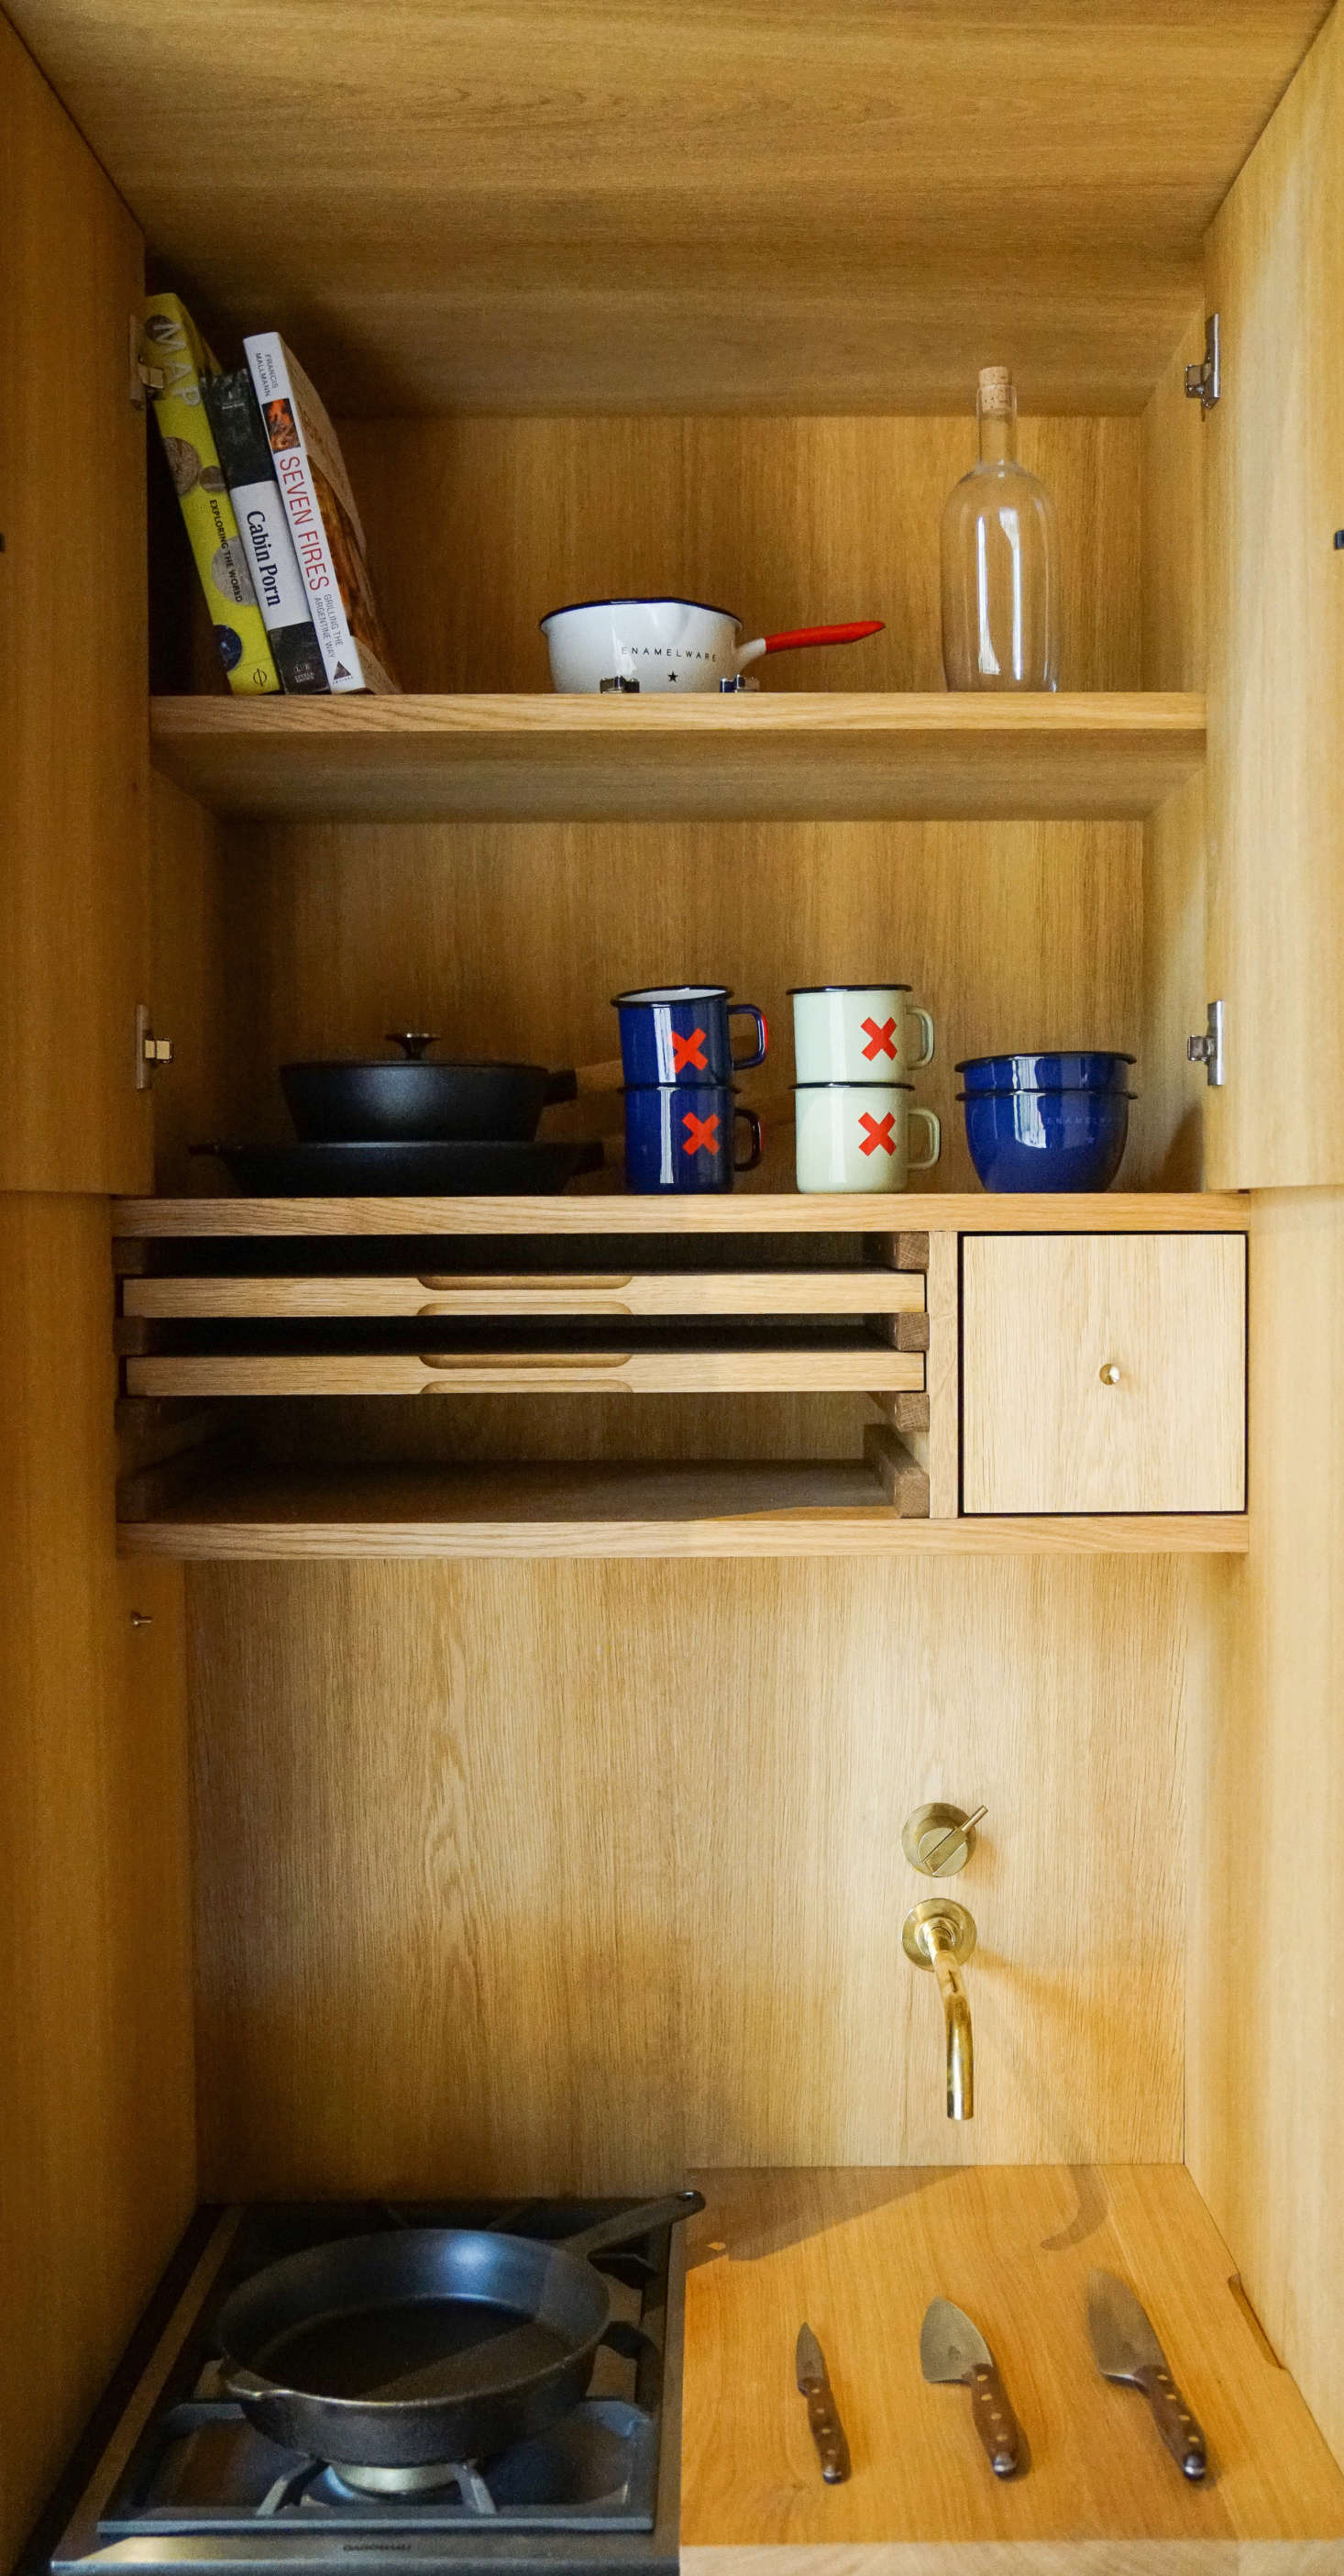 KBH detailed the all-oak design with an overhead cabinet and pullout wooden cutting boards (when one is placed atop the sink, as shown here, it becomes a work counter).